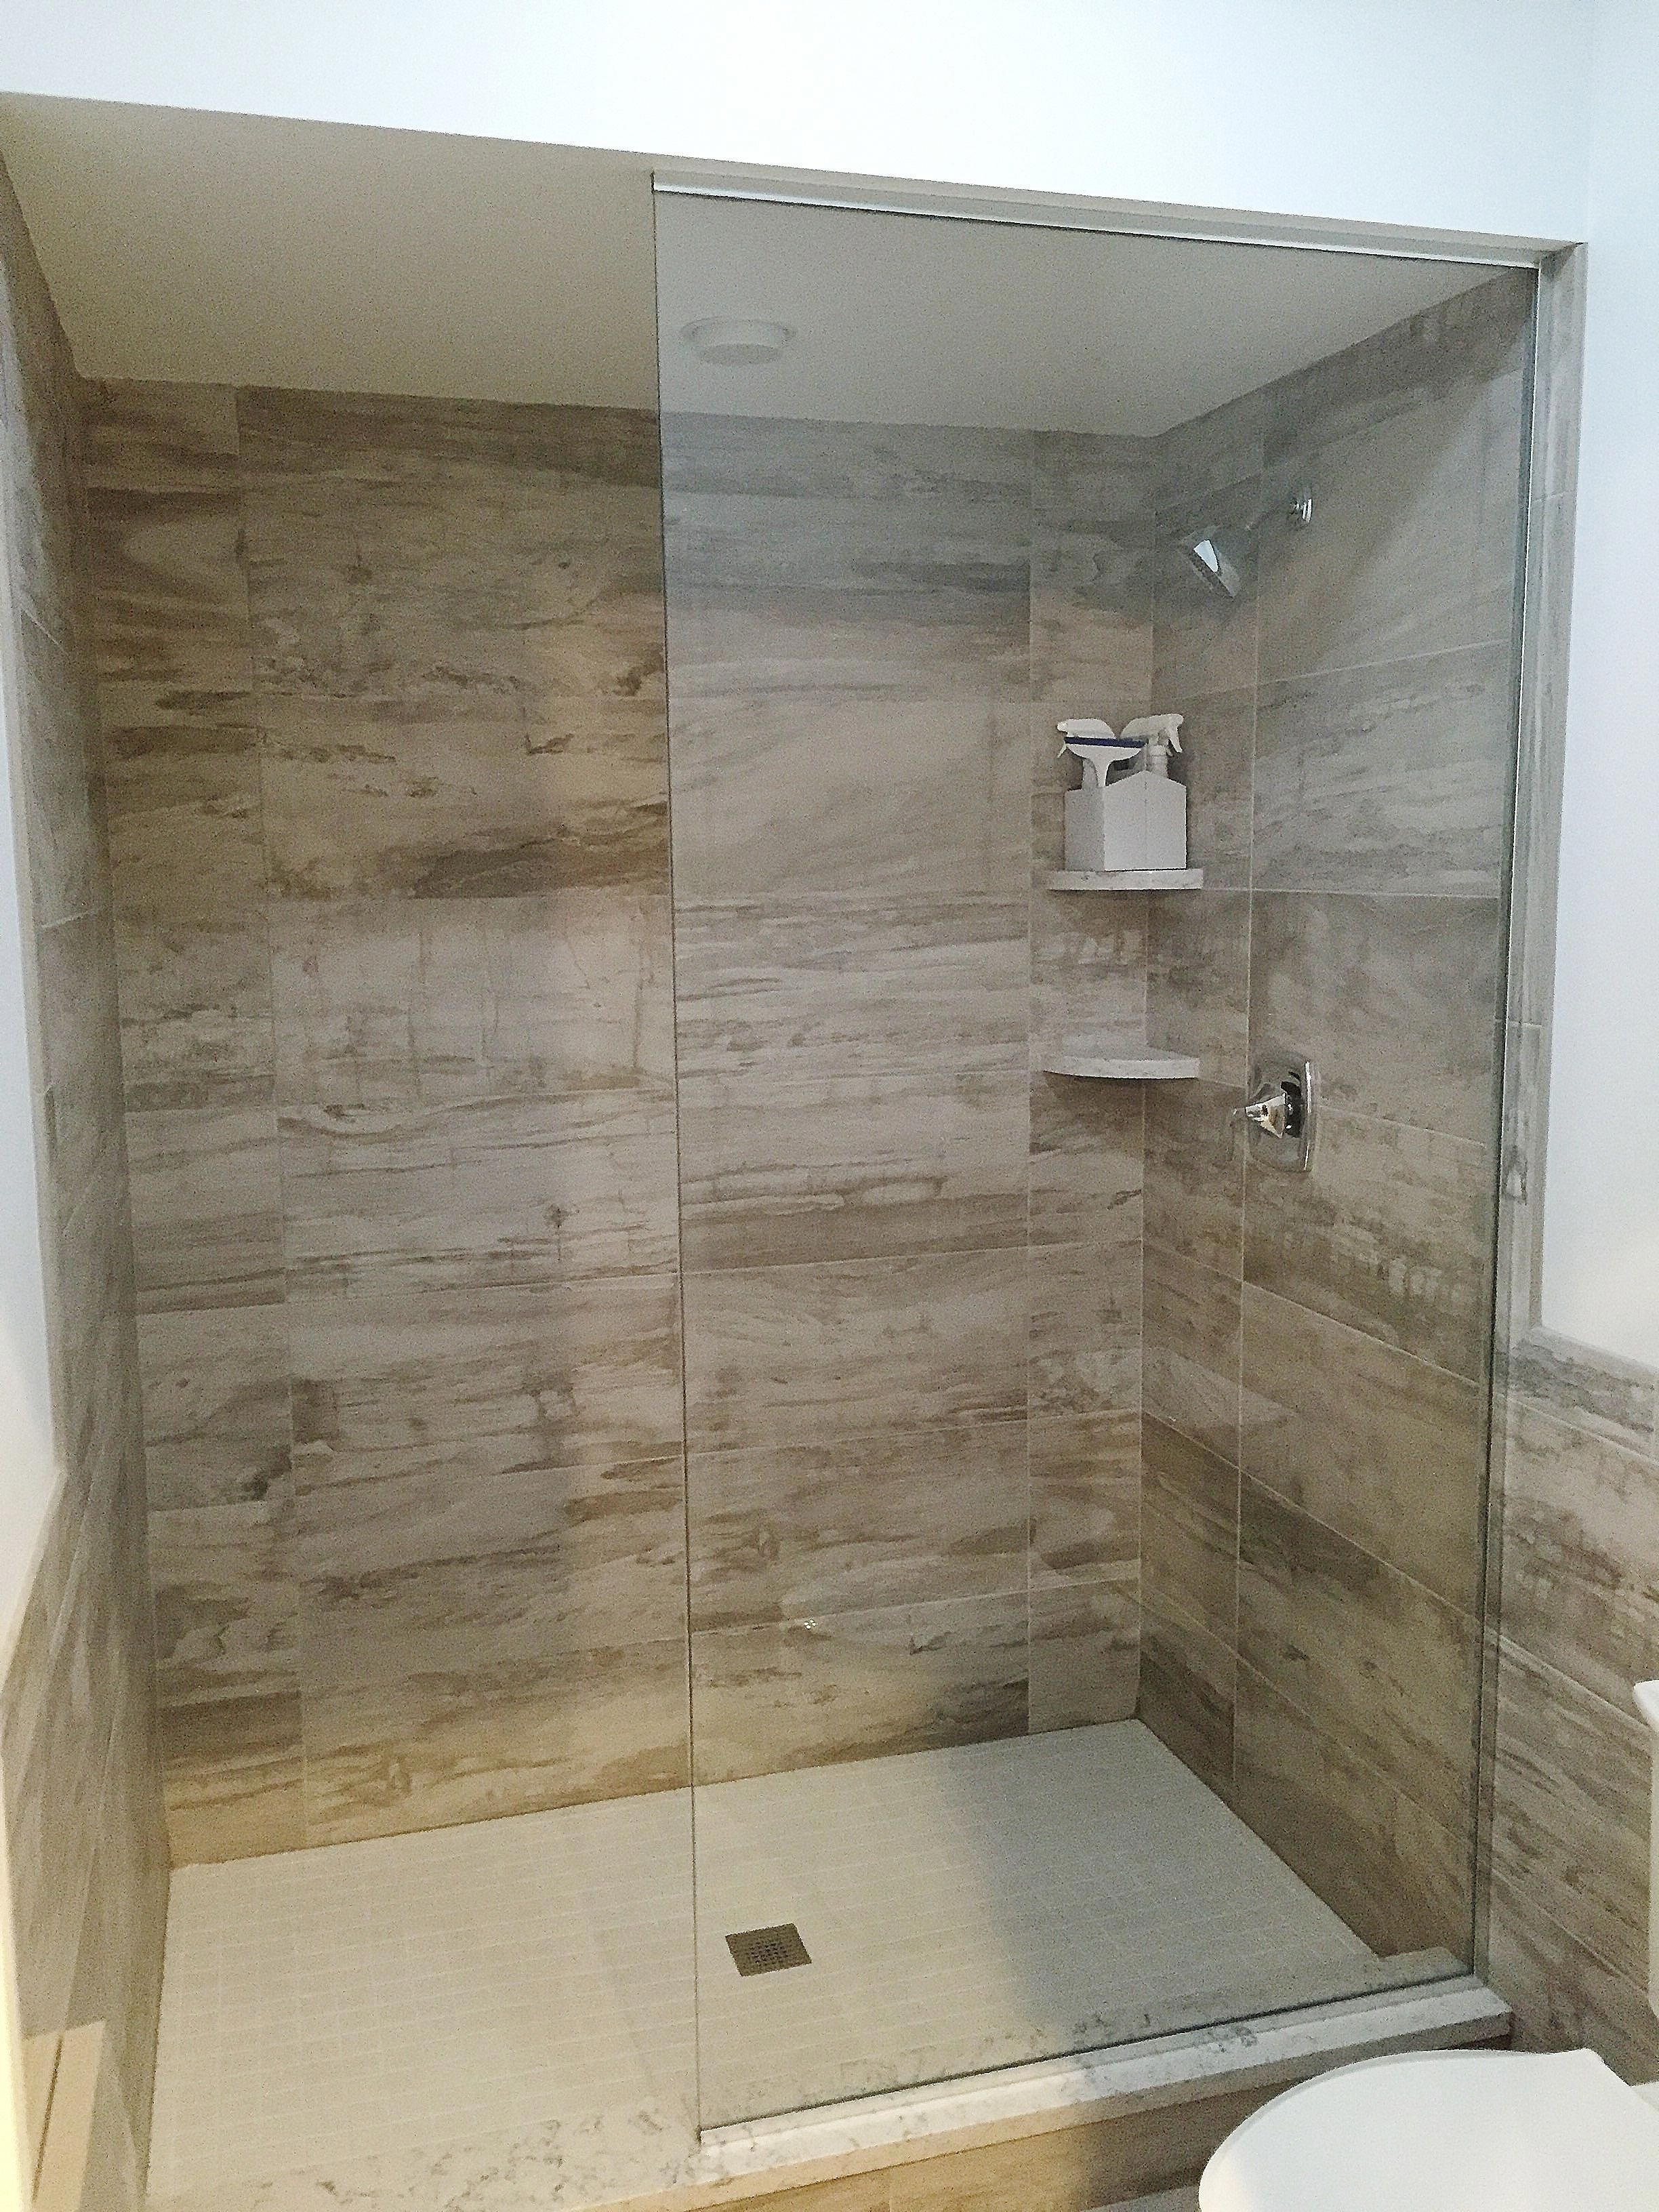 This Steam Shower Has A Flip Transom Above The Door The Panel Is